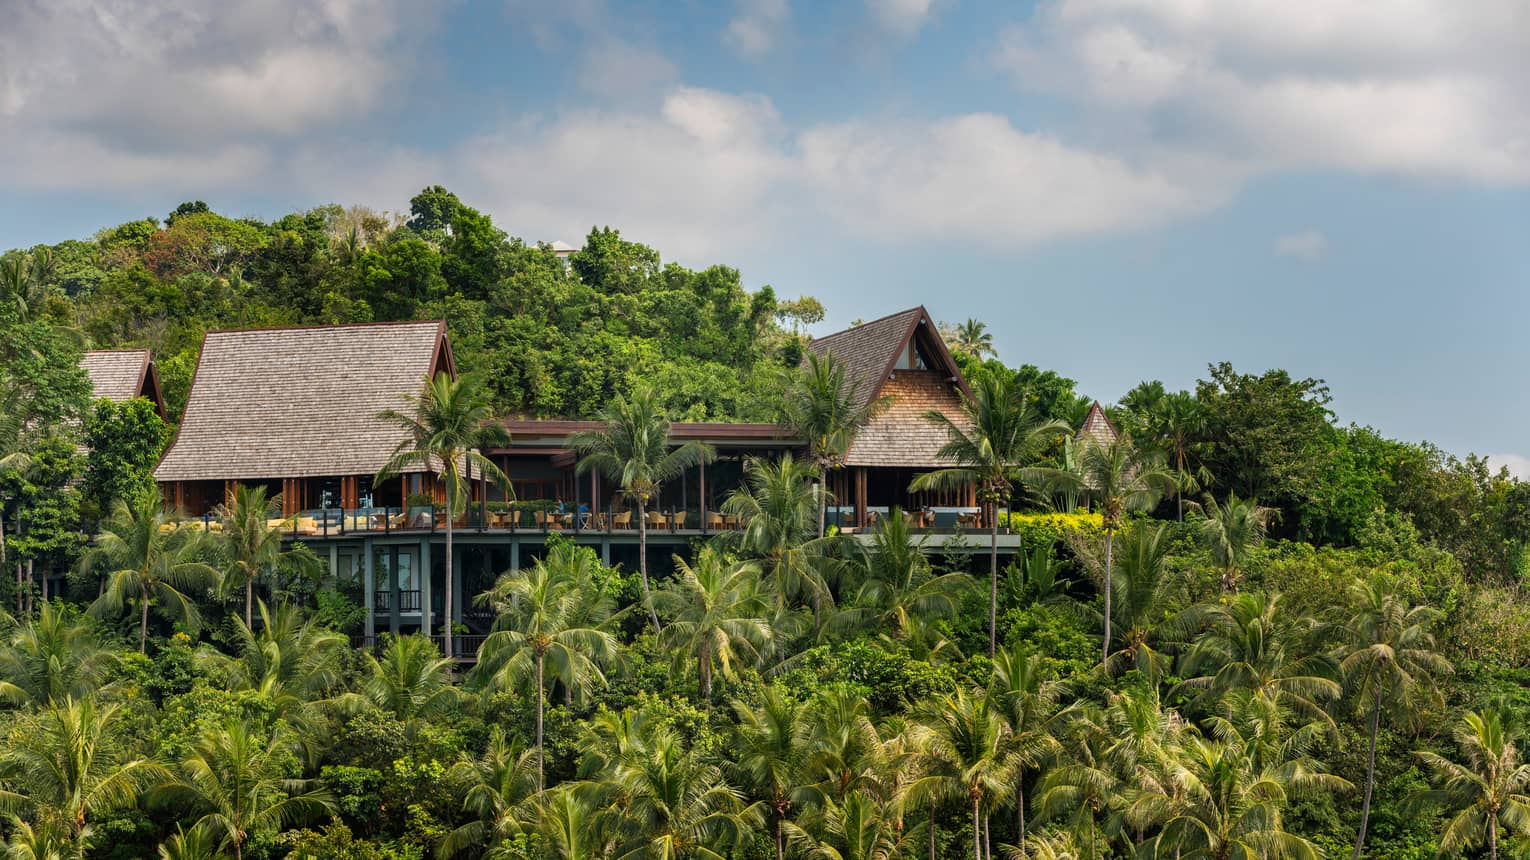 Exterior view of KOH Thai Kitchen and Bar building, perched on mountain amid tropical trees